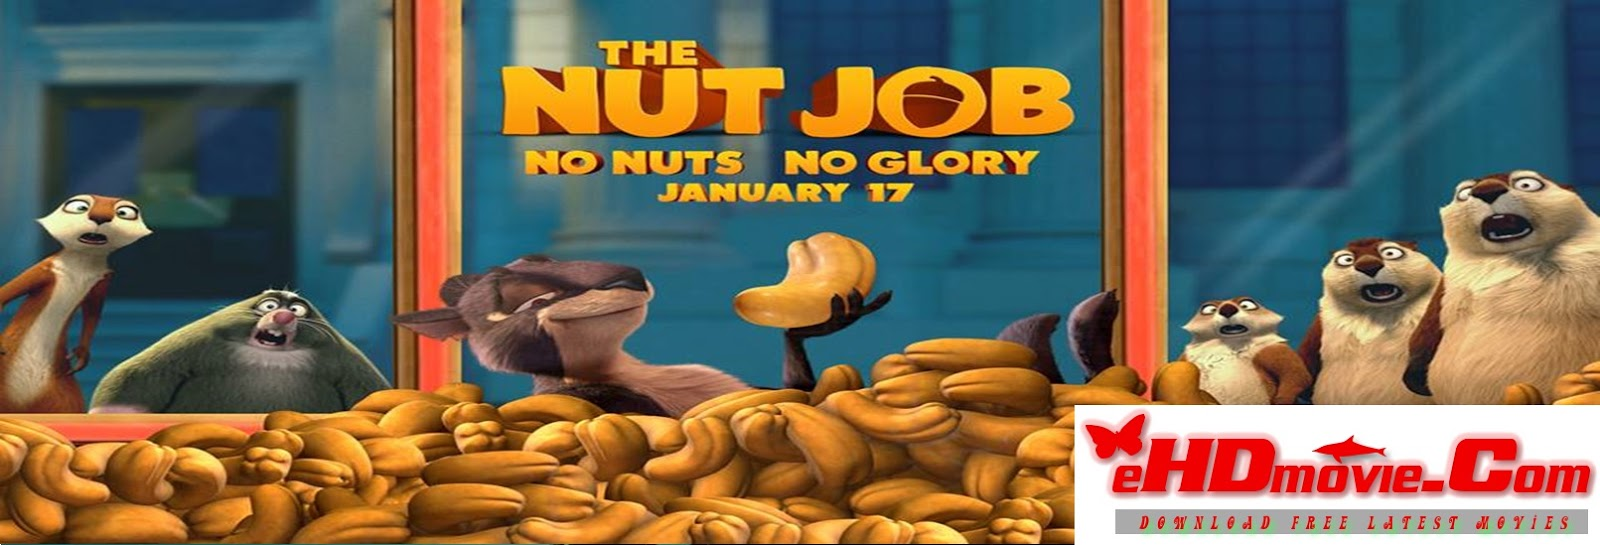 The Nut Job 2014 Full Movie Dual Audio [Hindi – English] 720p - 480p ORG BRRip 300MB - 950MB ESubs Free Download